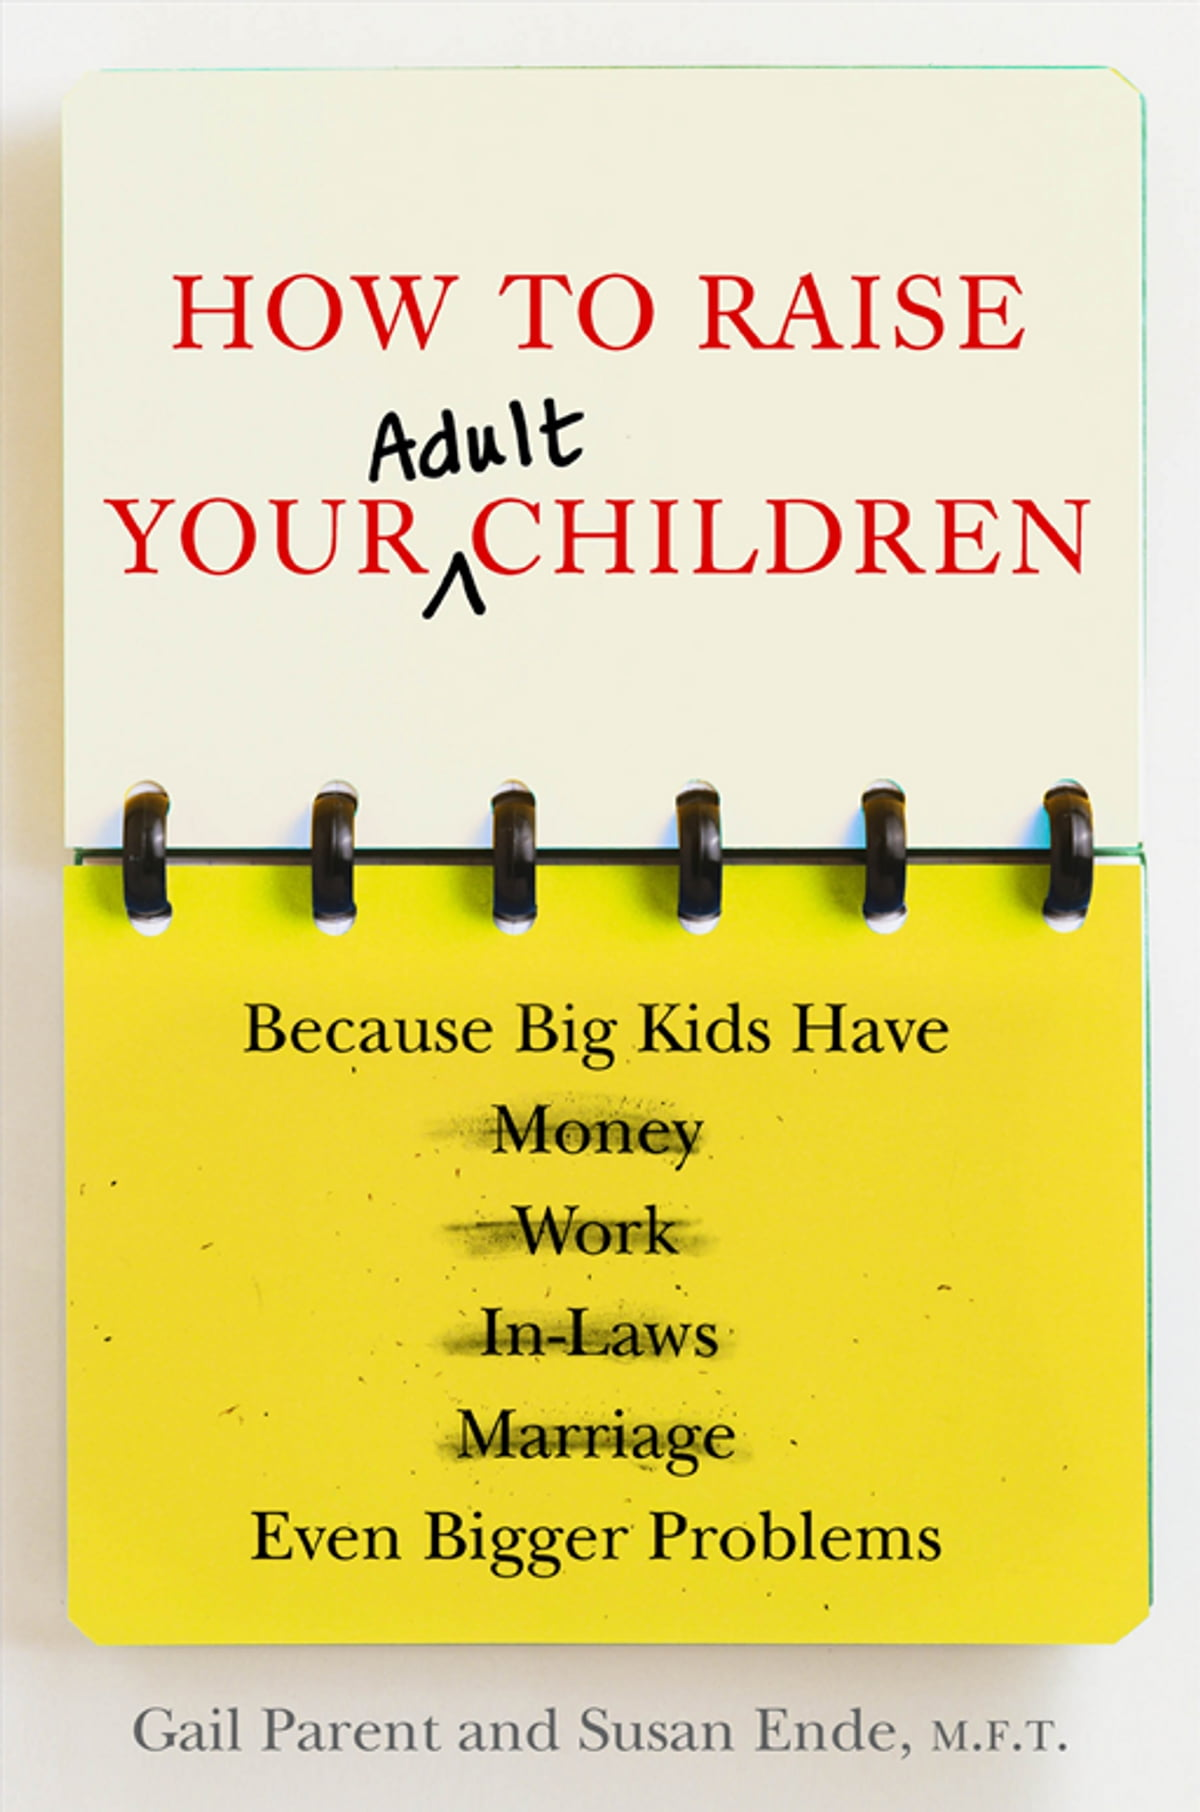 How to Raise Your Adult Children eBook by Gail Parent - 9781101457689 |  Rakuten Kobo